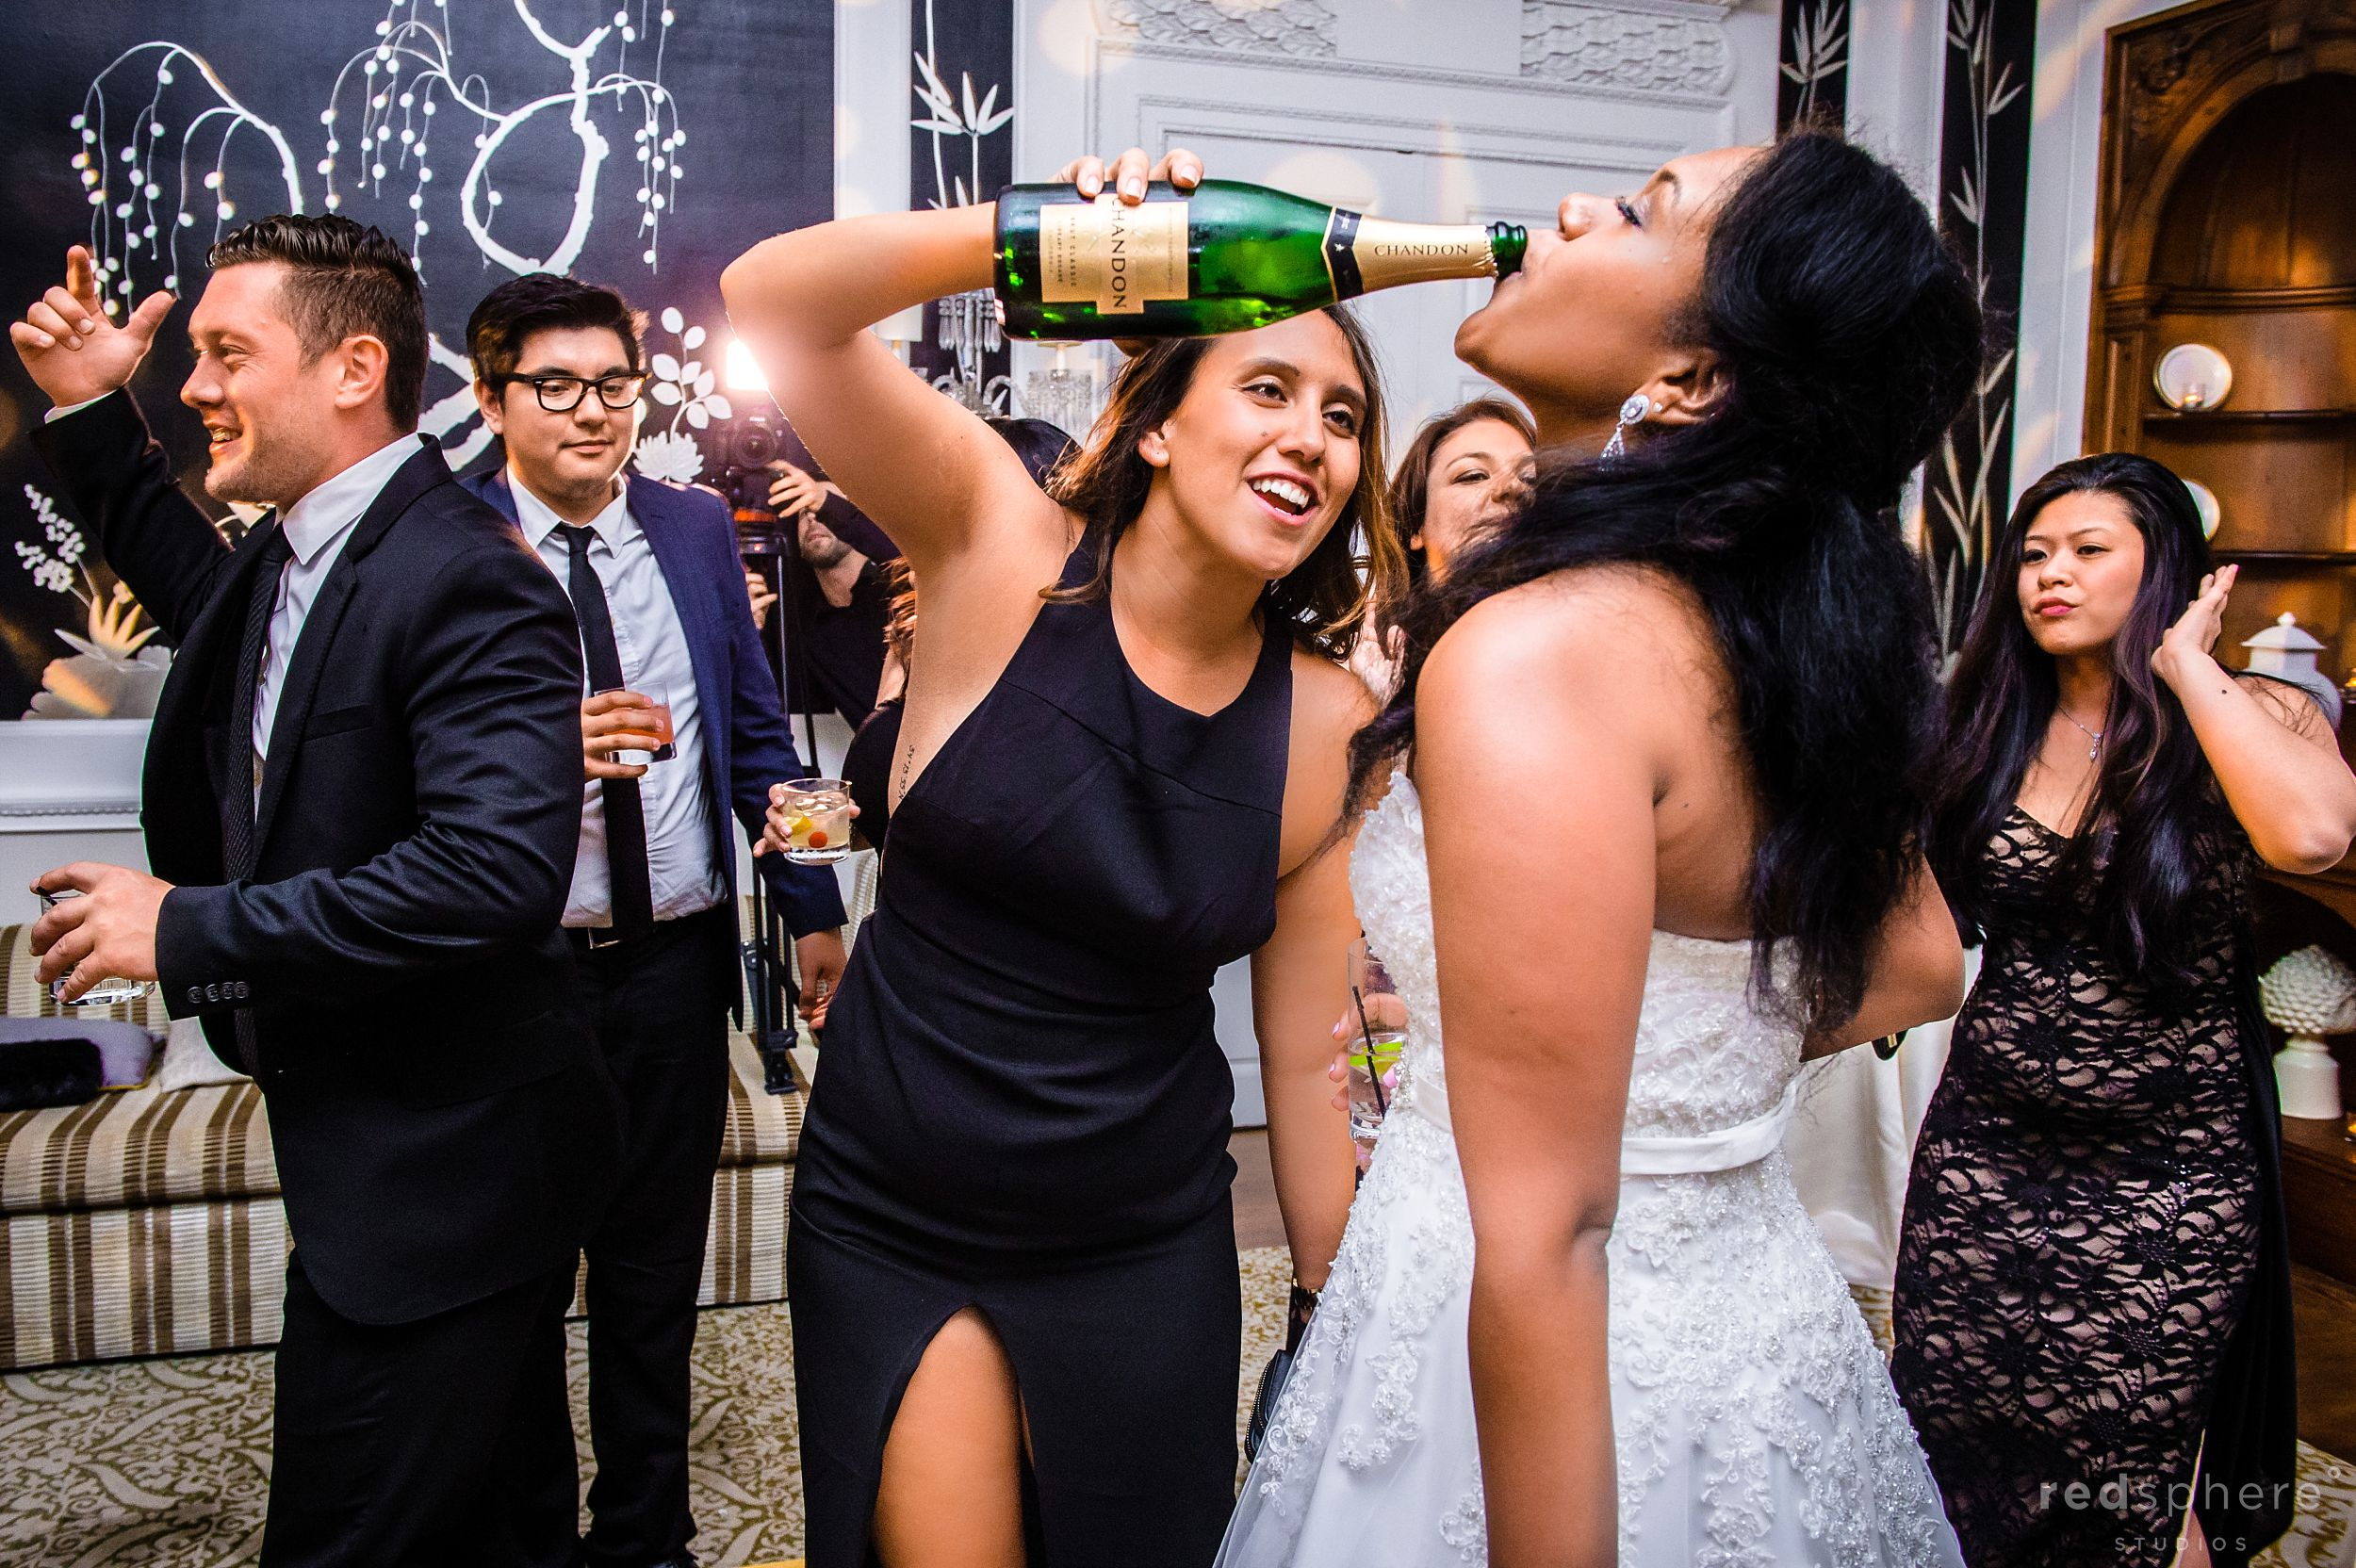 Bride Drinking at Fairmont Hotel Wedding After Party